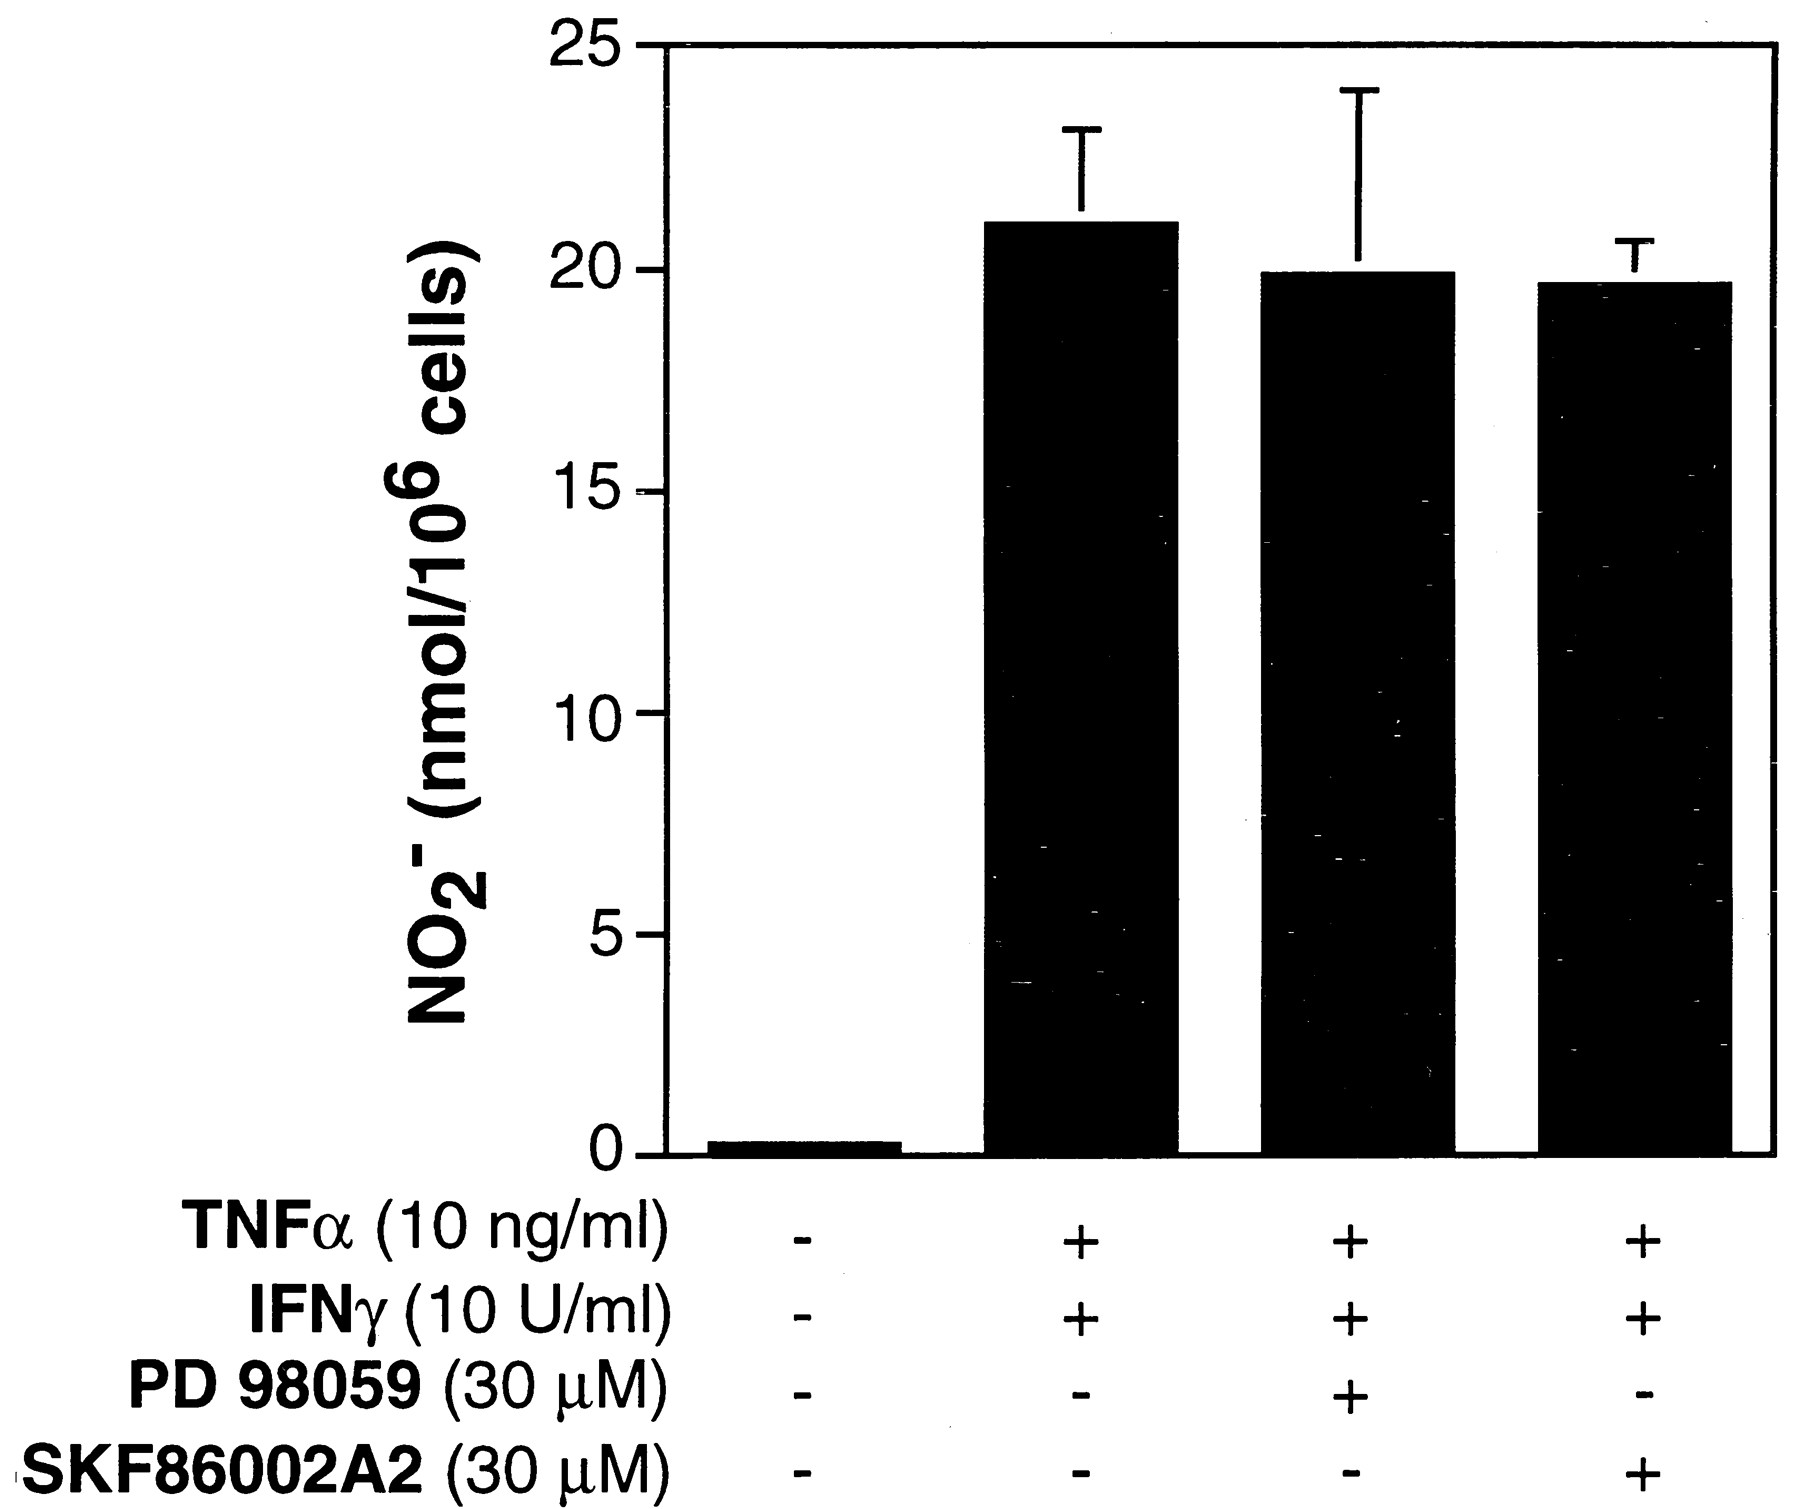 Evaluation Of The Role Of Mitogen Activated Protein Kinases In The Expression Of Inducible Nitric Oxide Synthase By Ifn G And Tnf A In Mouse Macrophages The Journal Of Immunology